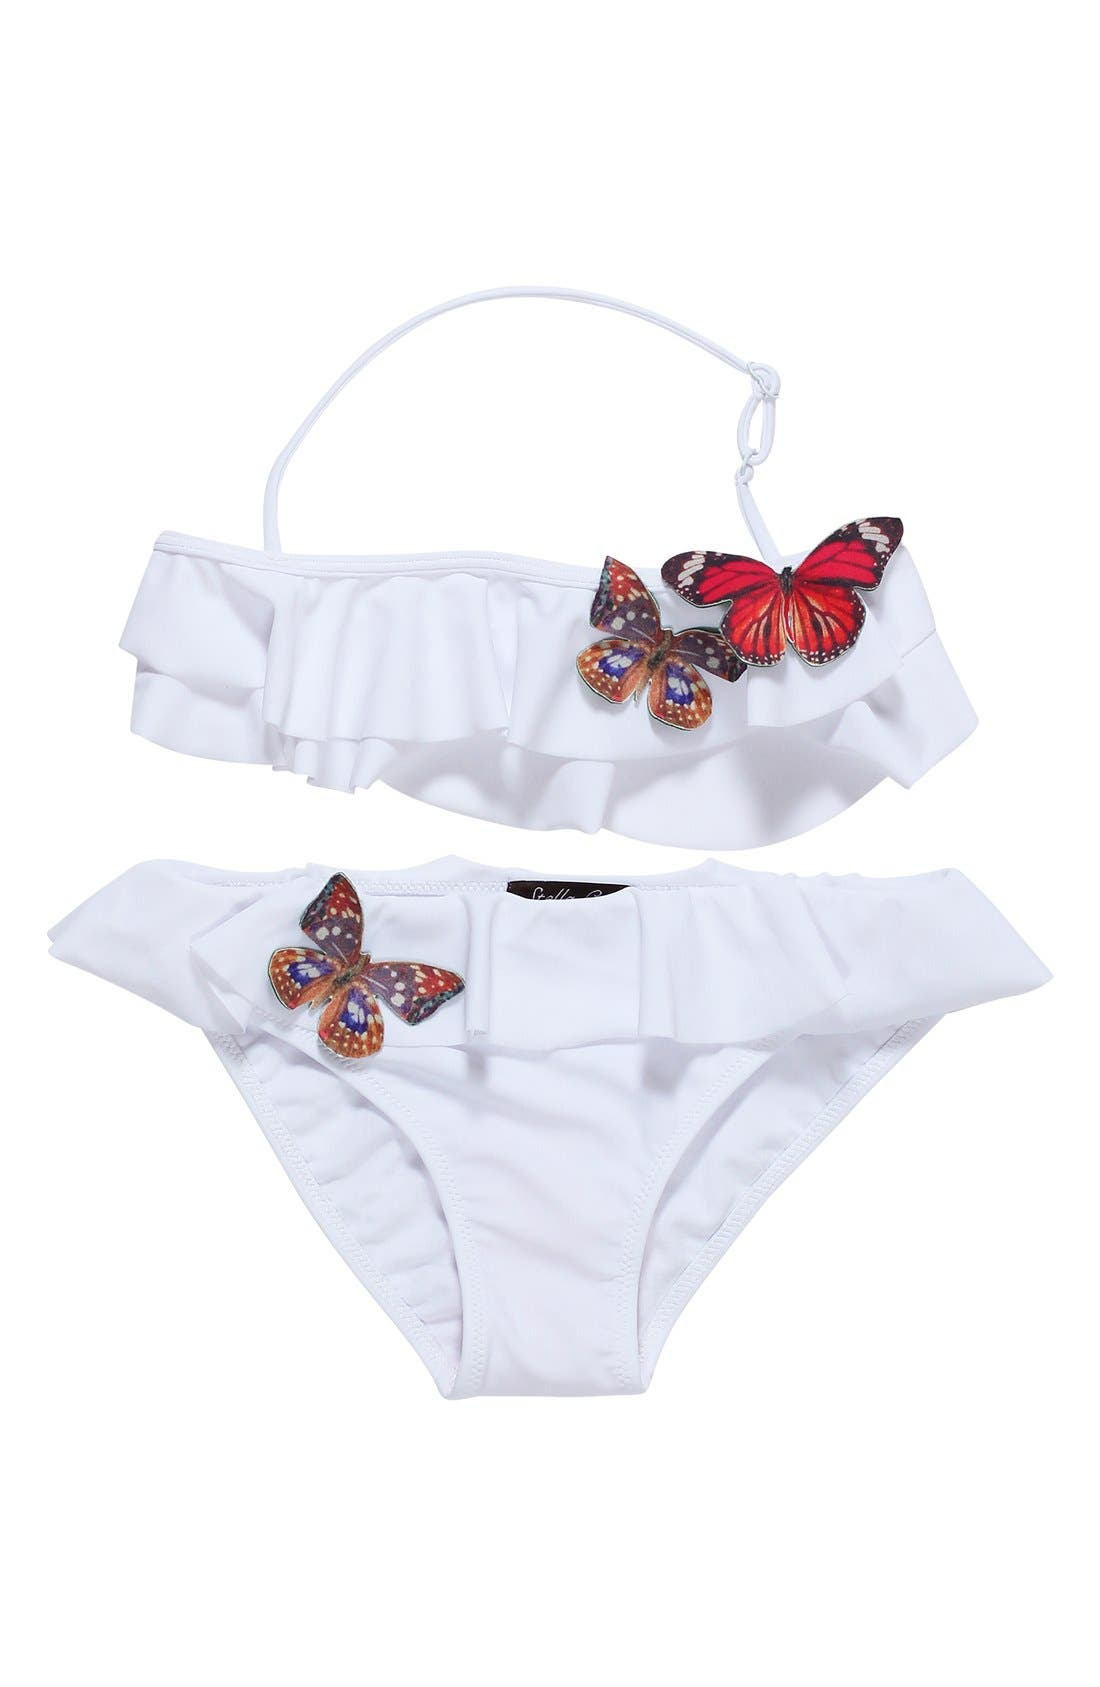 STELLA COVE 'Butterfly' Ruffle Two-Piece Swimsuit